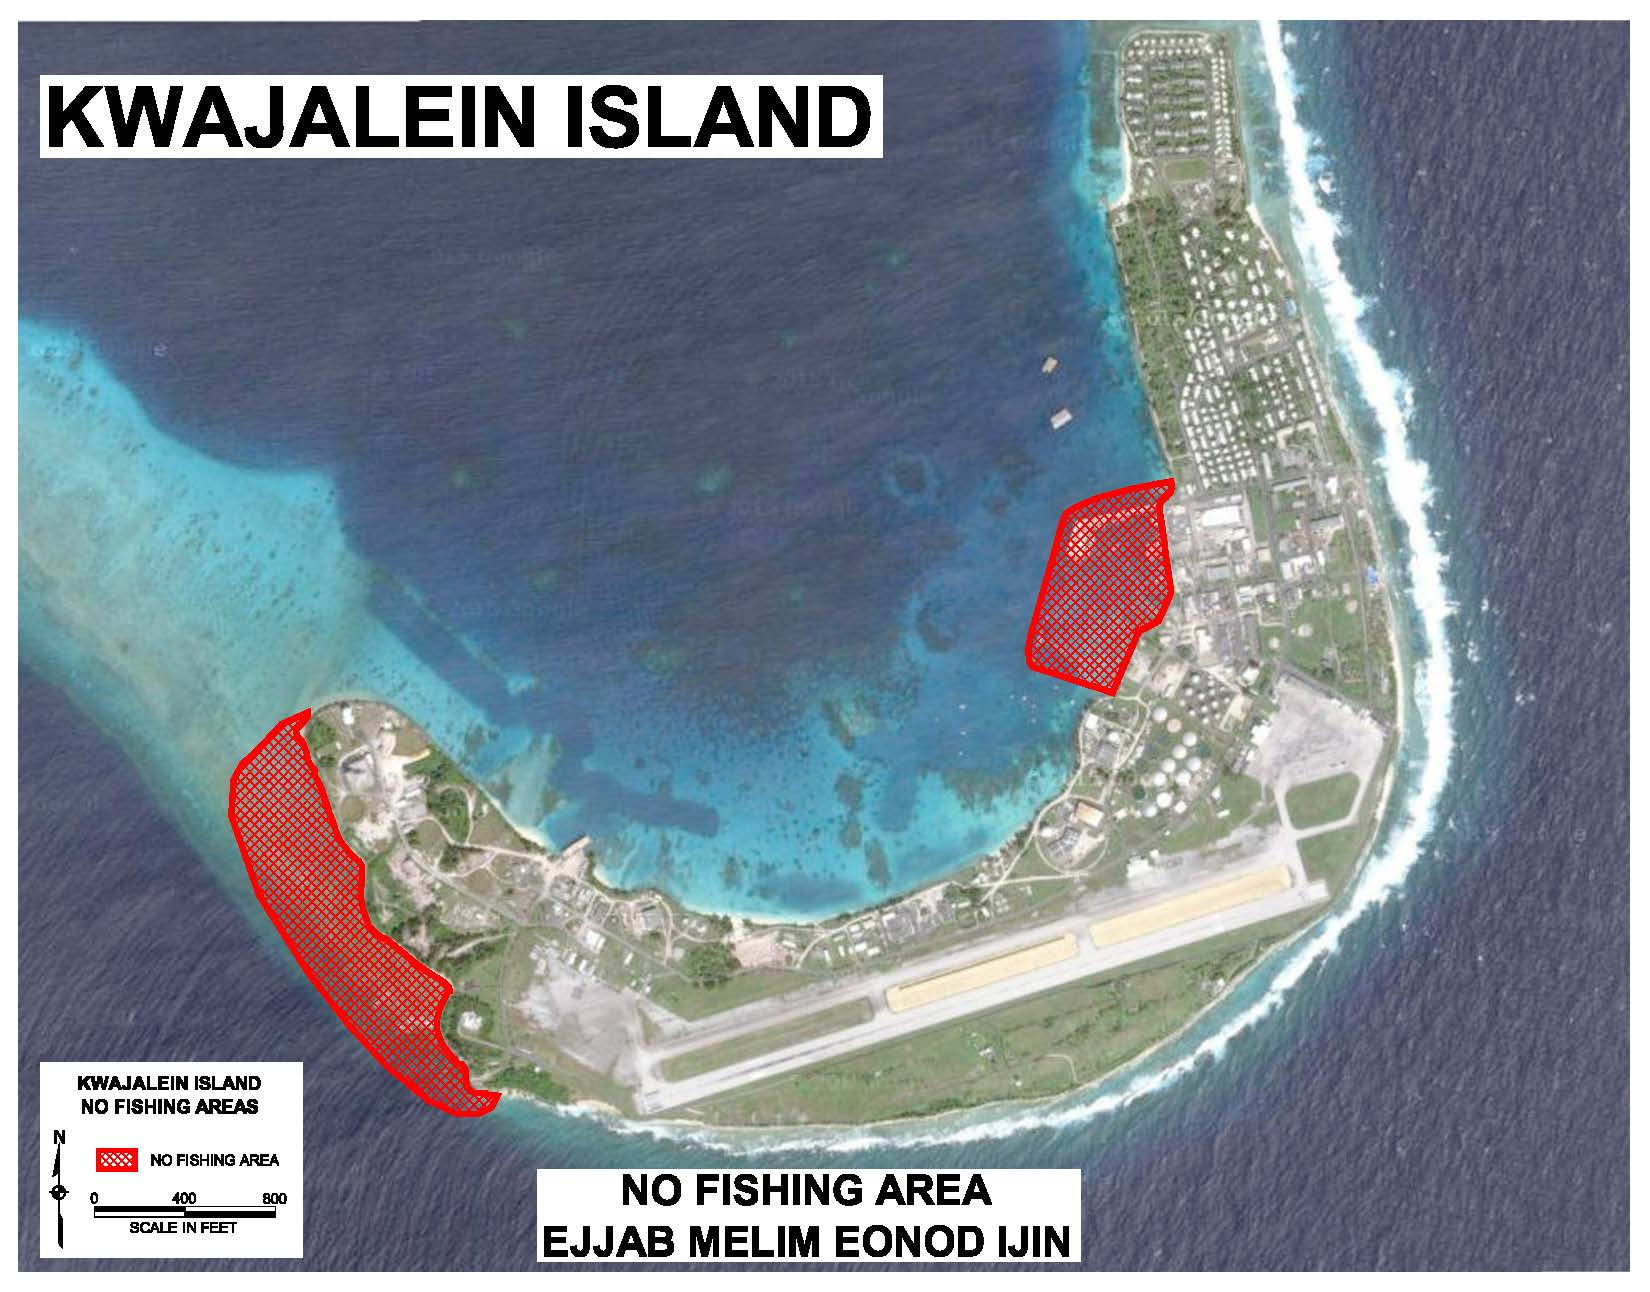 No Area Maps and Signs   Home Map Of Kwajalein on map of singapore, map of majuro atoll, map of mst, map of the aleutian islands, map of marshall islands, map of bahrain, map of diego garcia, map of okinawa, map of mauritius, map of iceland, map of kwaj, map of funafuti, map of new britain island, map of malta, map of mili, map of guatemala, map of tahiti, map of guam, map of colombo, map of peleliu,